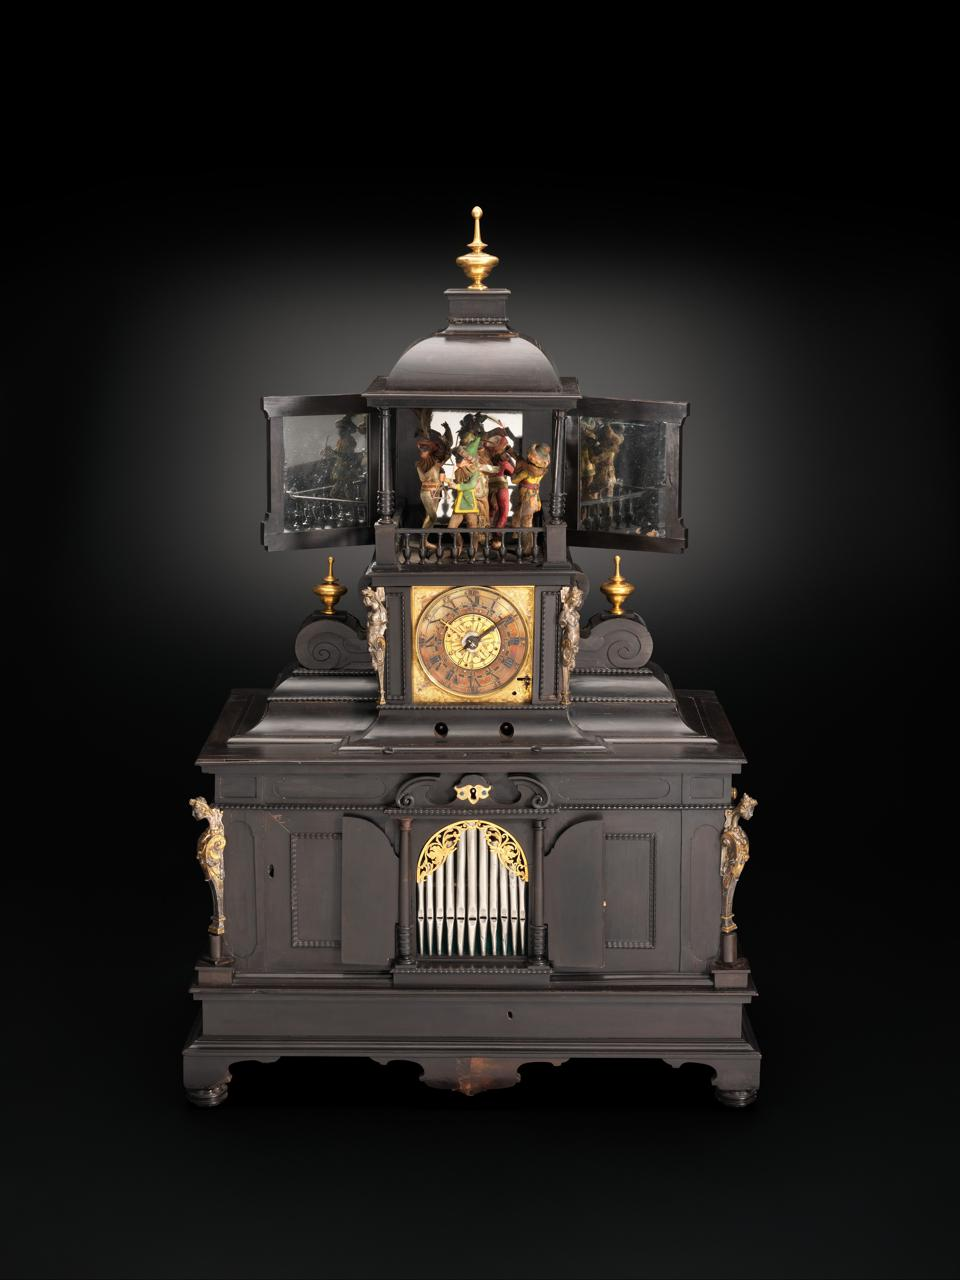 Veit Langenbucher (1587–1631). Samuel Bidermann (German, 1540–1622). Musical Clock with Spinet and Organ, ca. 1625. Ebony, gliding, brass, silver gilt, gilt brass, iron, various wood and metals, wire, parchment and leather. 30 3/4 × 19 11/16 × 12 5/8 in. (78.1 × 50 × 32 cm). Inner Mechanism: 10 3/4 × 19 × 10 in. (27.3 × 48.3 × 25.4 cm). Purchase, Clara Mertens Bequest, in memory of André Mertens, 2002, The Metropolitan Museum of Art, New York (2002.323a–f)